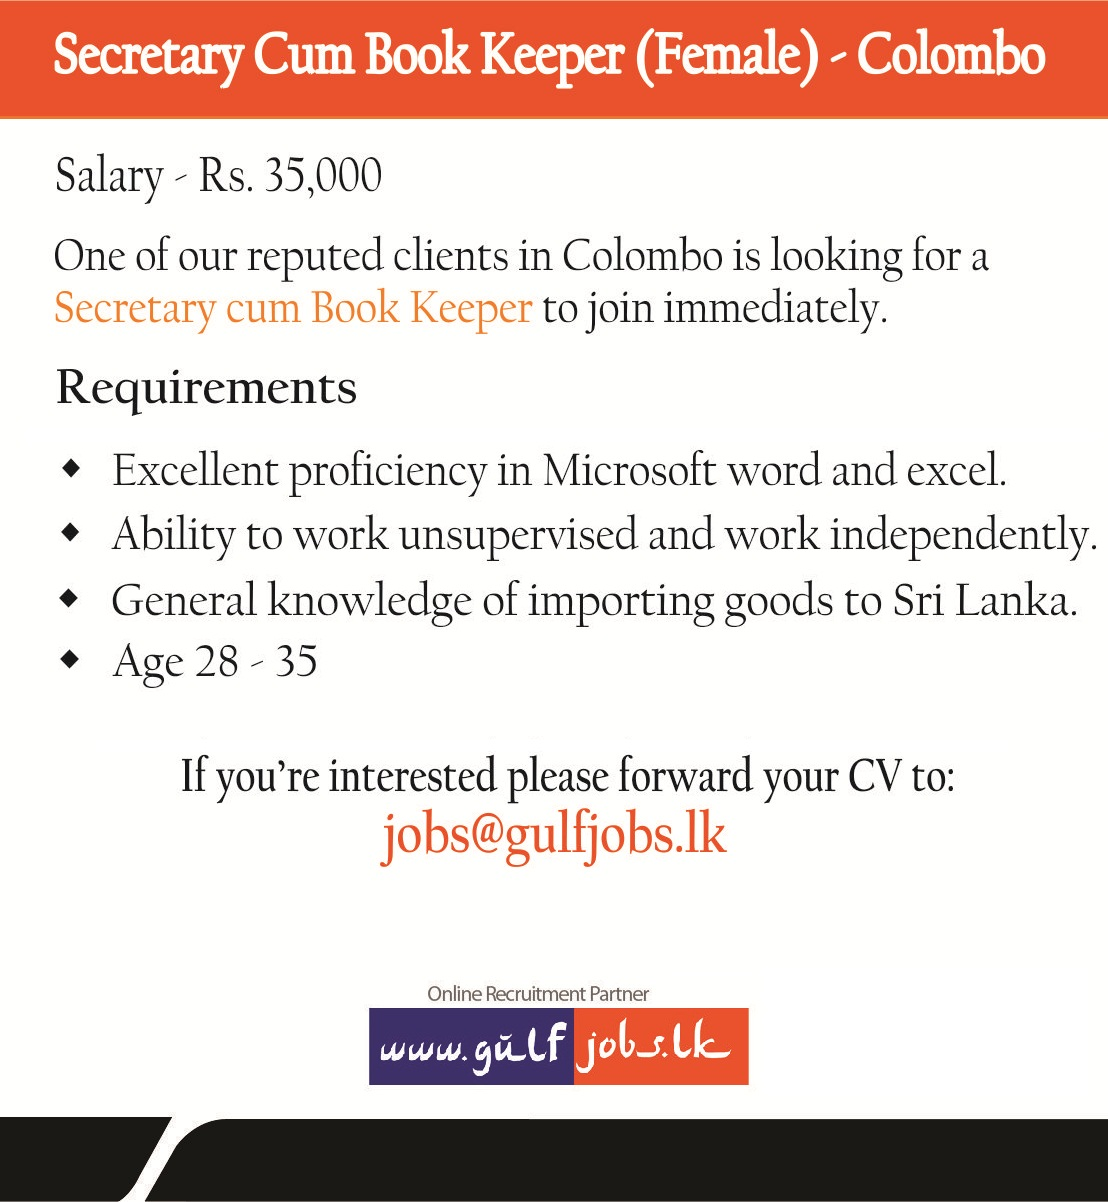 secretary cum book keeper female colombo job vacancy in sri lanka requirements ♦ excellent proficiency in microsoft word and excel ♦ ability to work unsupervised and work independently